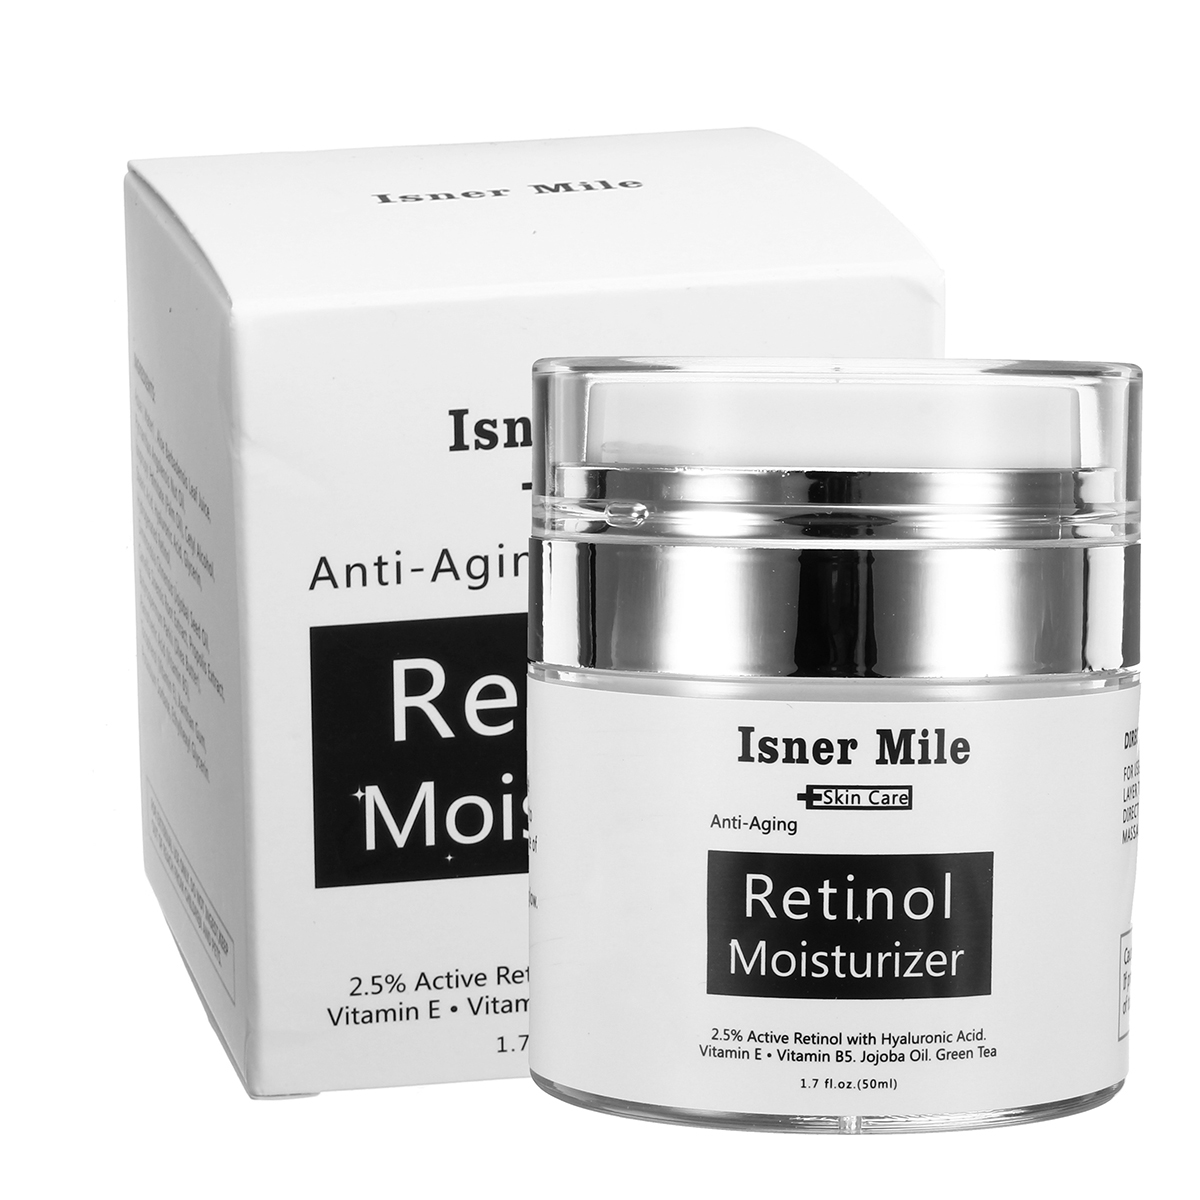 Isner Mile 2.5% Active Retinol Facial Cream Anti Aging 50ml